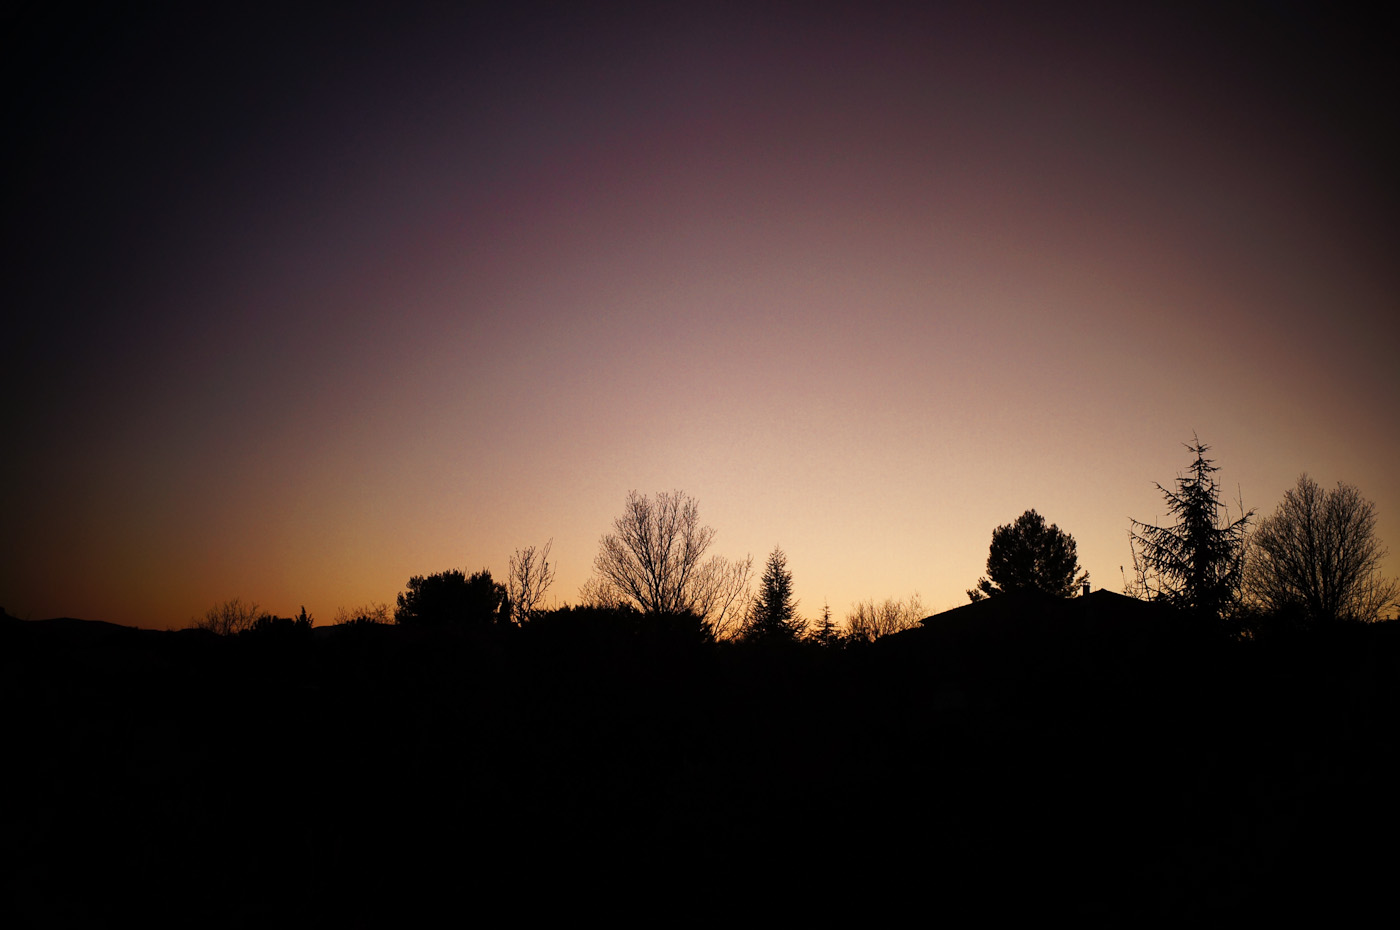 A magenta sunset accentuated by the Toy Cameramode on the Sony NEX-5N. Imaged with the Elmarit-M 90/2.8 Leica lens